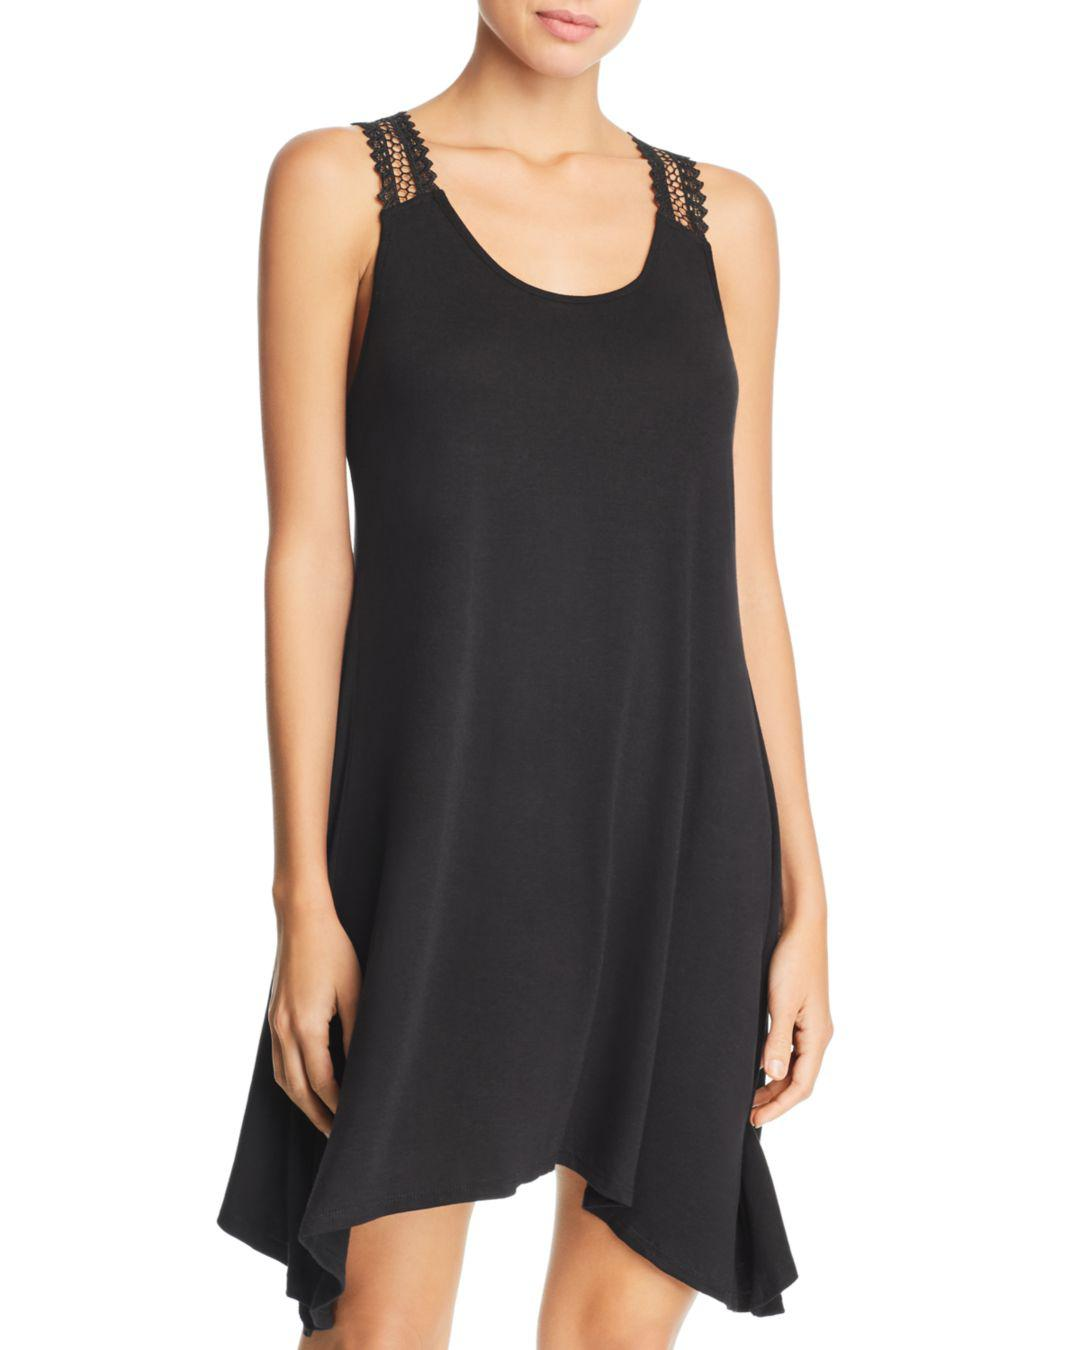 00a137ff0a3d8 Lyst - J Valdi Luxe Jersey Crochet-racerback Swim Cover-up in Black